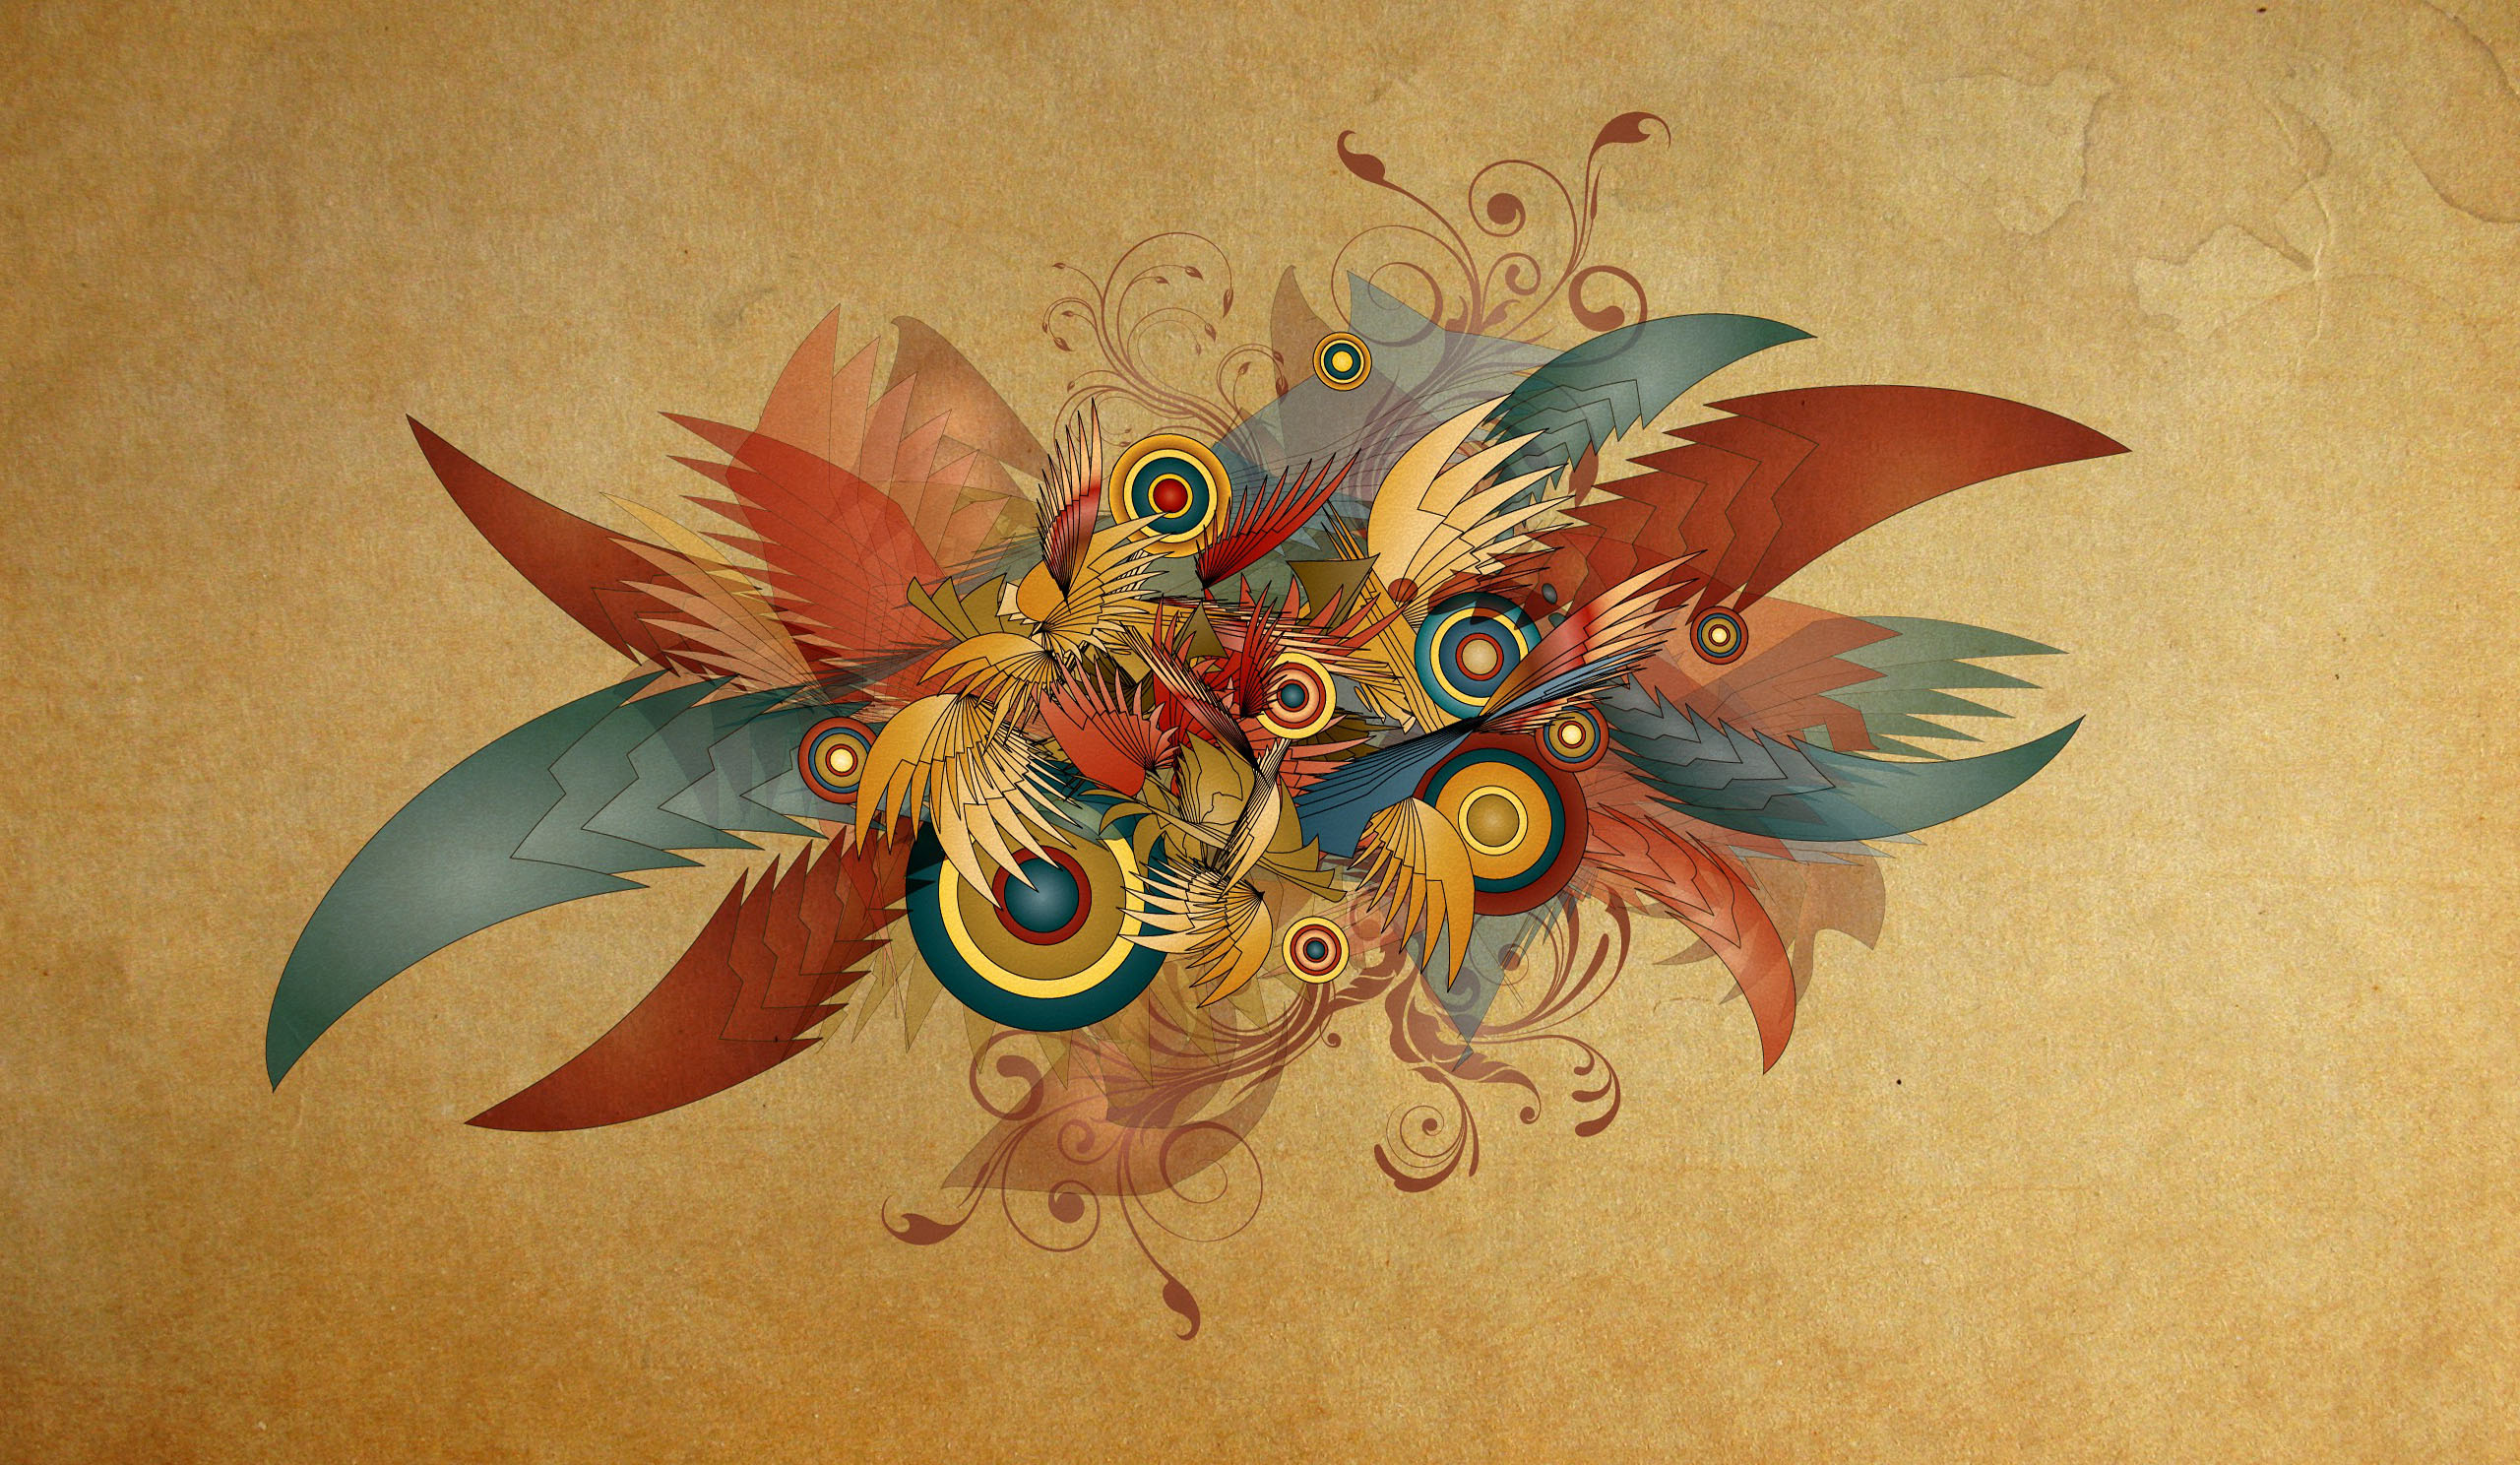 Abstract Feather Digital Art Wallpapers HD Desktop and Mobile 2560x1488